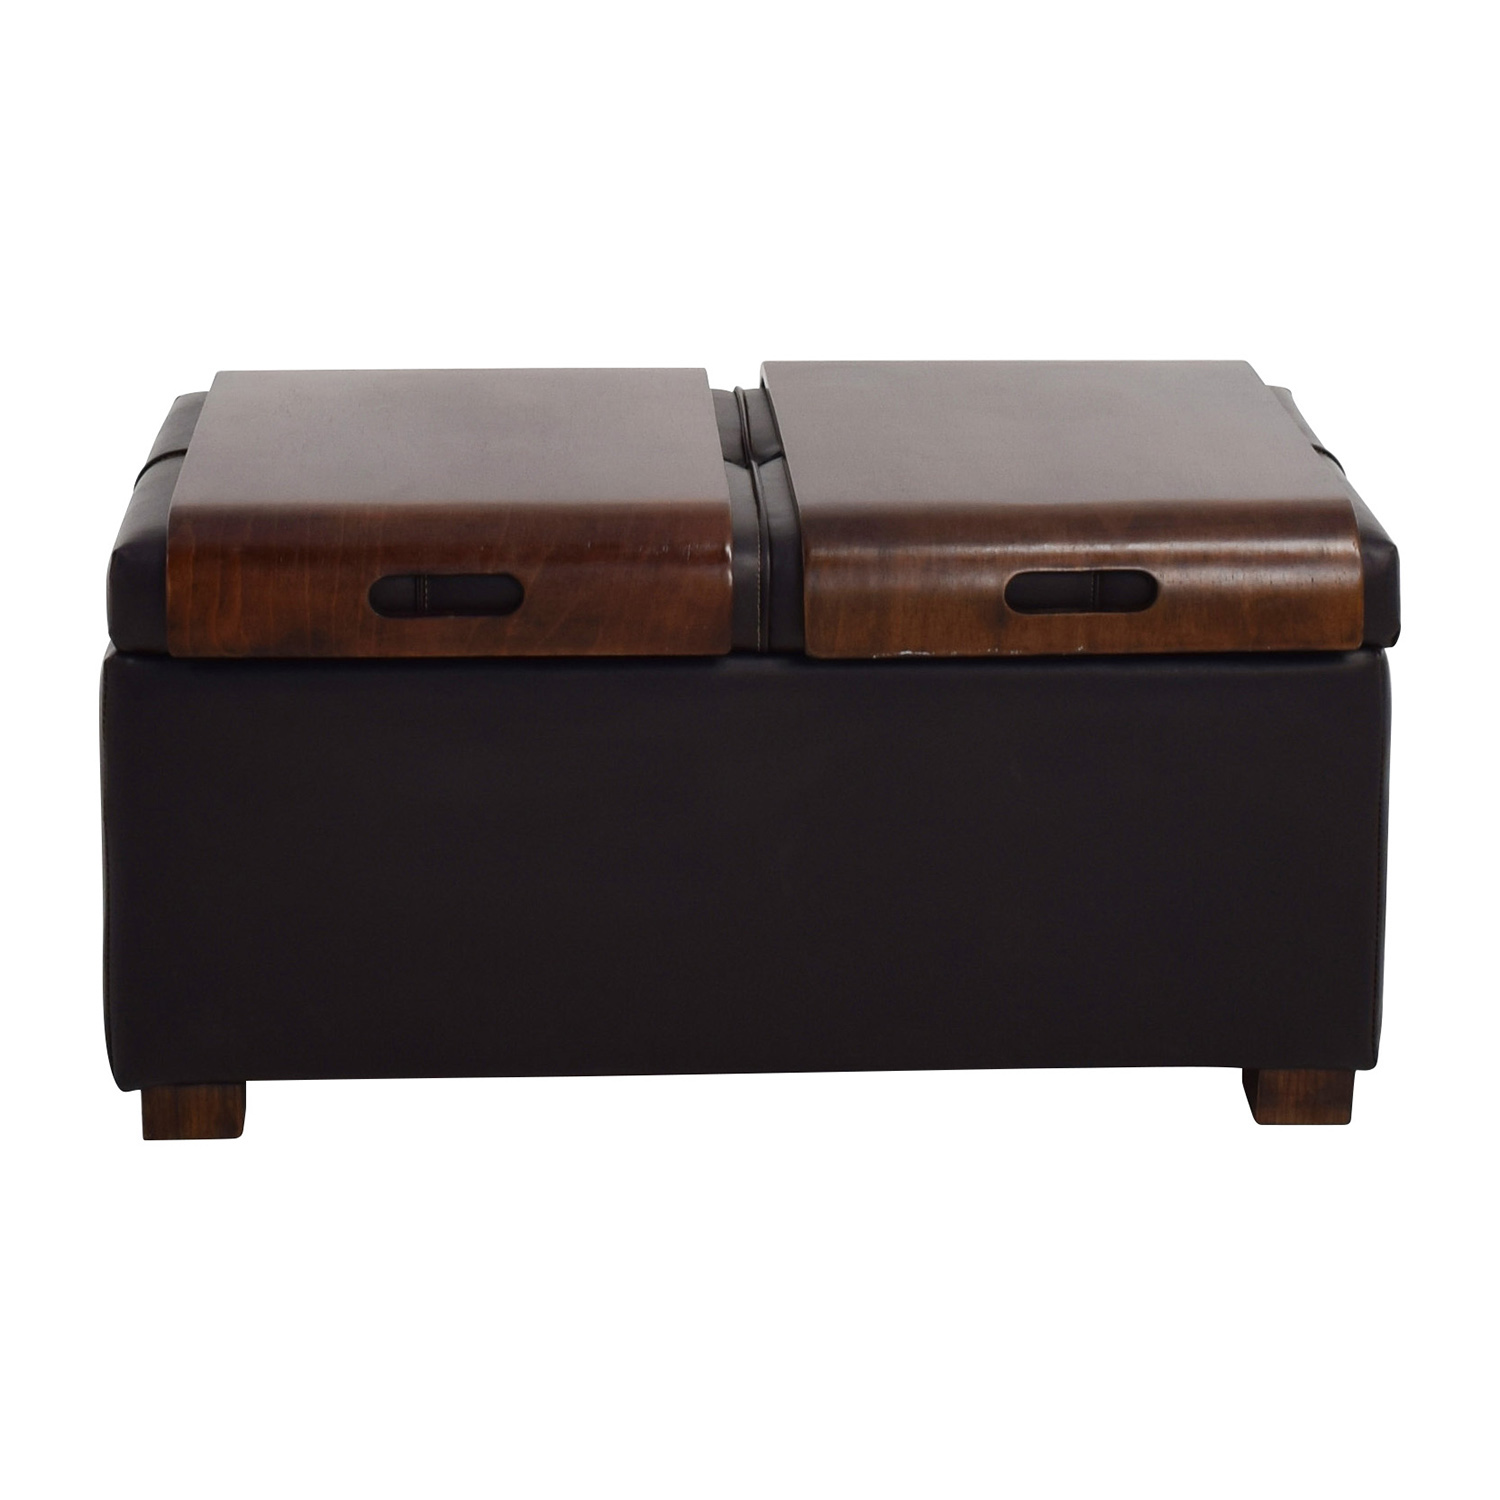 Raymour and Flanigan Raymour & Flanigan Storage Ottoman with two trays dark brown